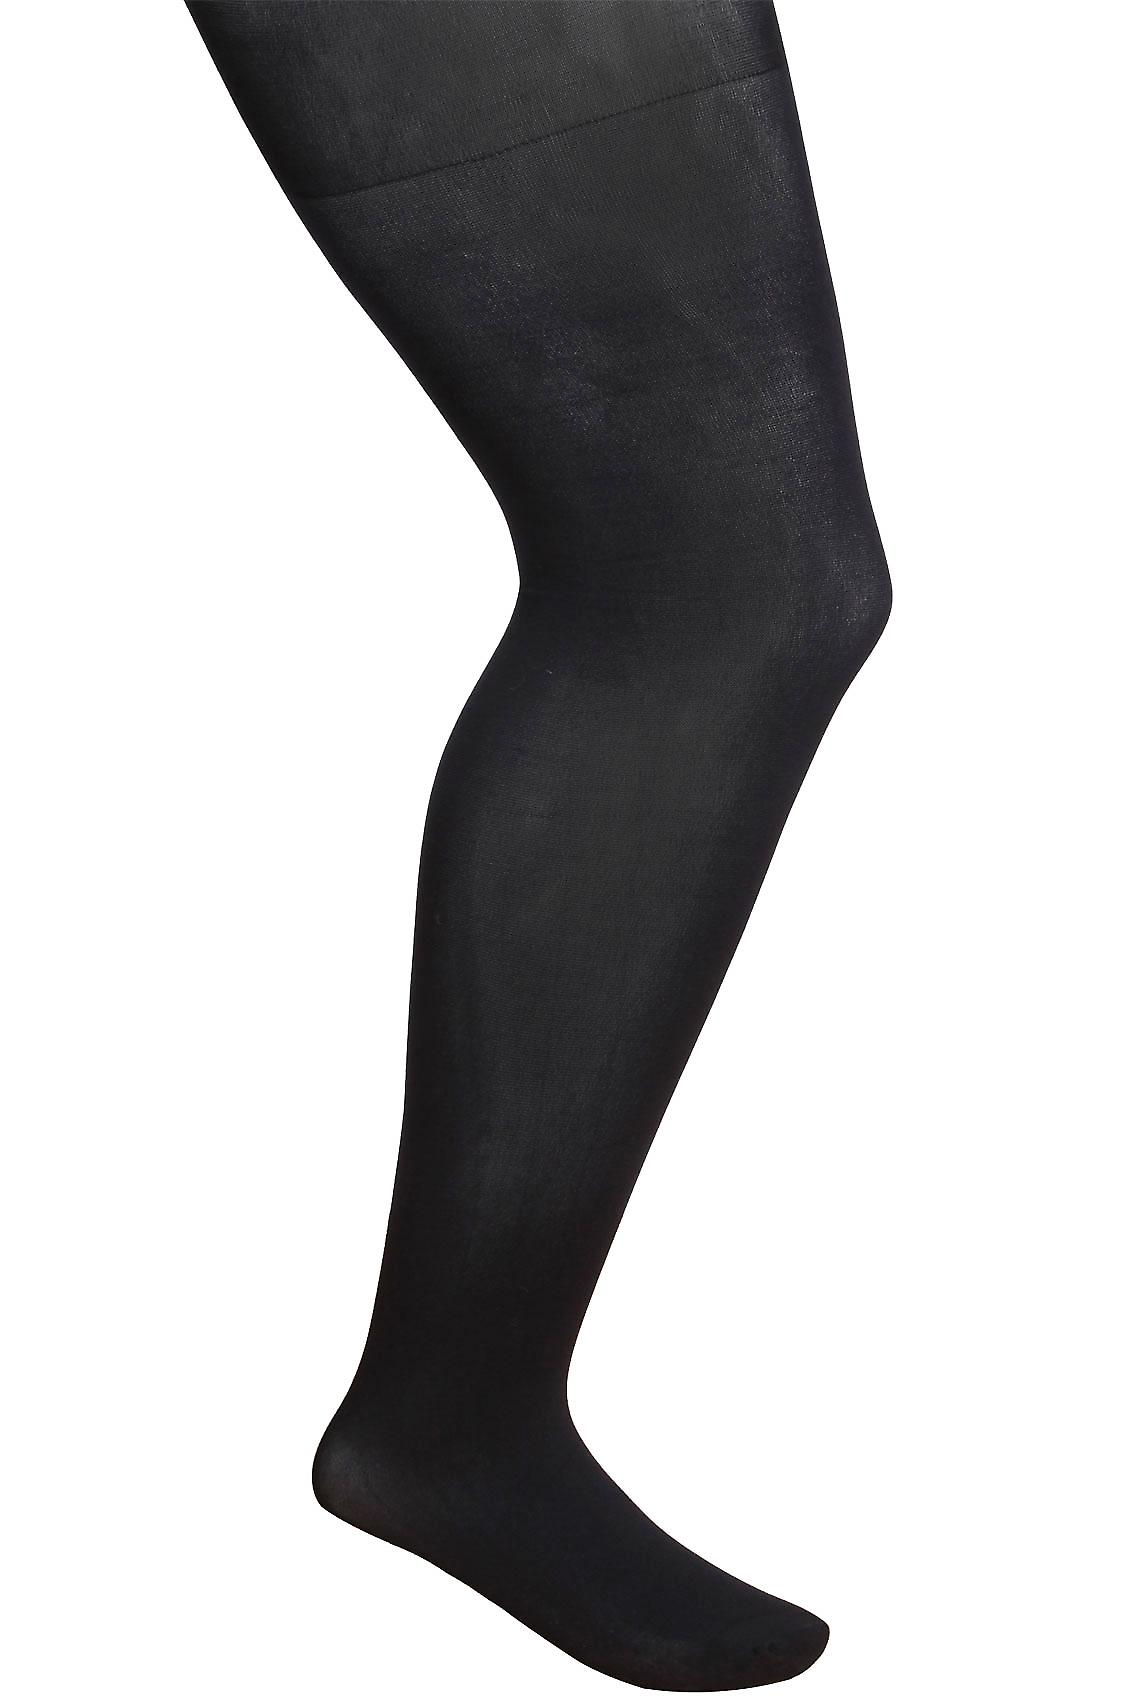 Black 70 Denier Opaque Tights